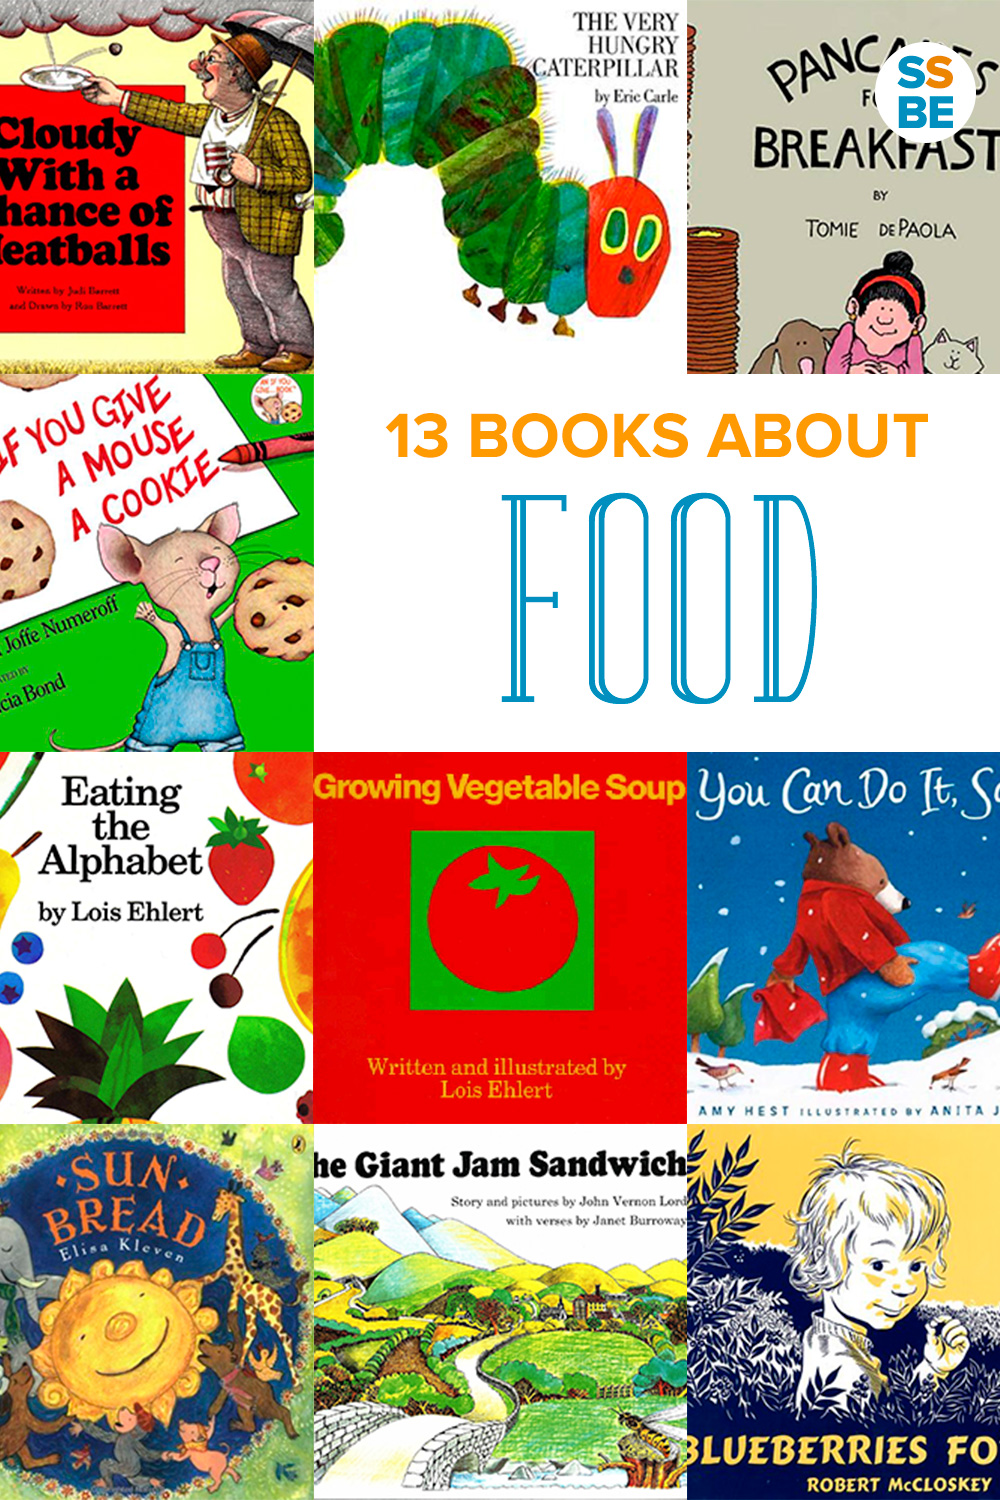 It's fun to learn about food with kids. Read stories about baking, cooking, eating and giving food. Here are 13 children's books about food to read aloud.